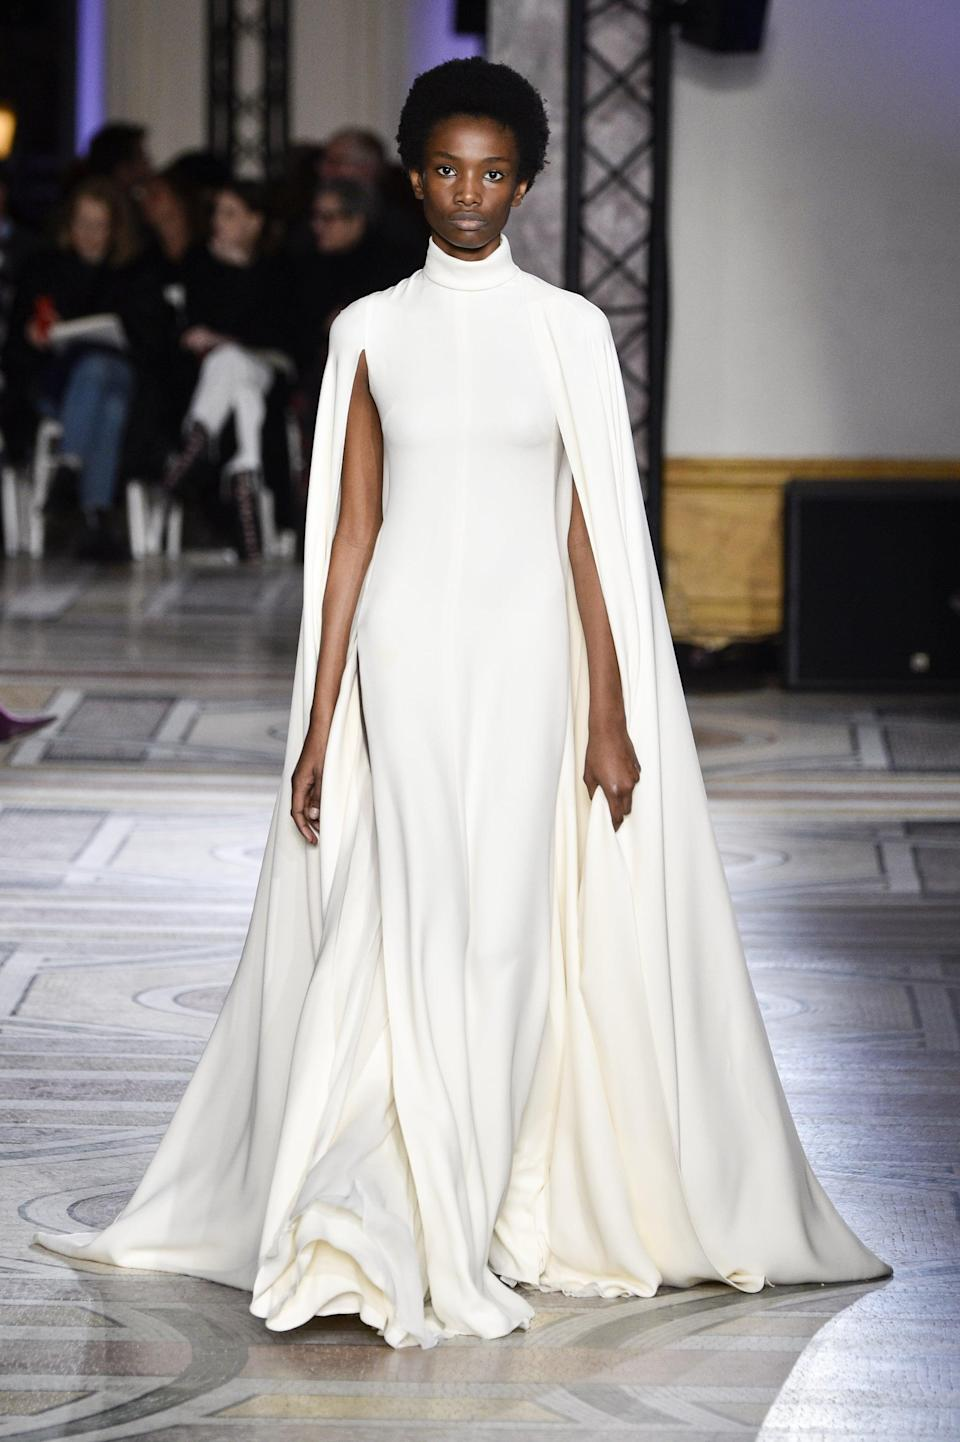 <p>Having walked her very first show for Marc Jacobs, newcomer Imari Karanja was sure to be a star from the start. Here's the crazy part: Imari is under 20 and has already walked for Christian Dior, Tom Ford, Hermès, and Giambattista Valli.</p>